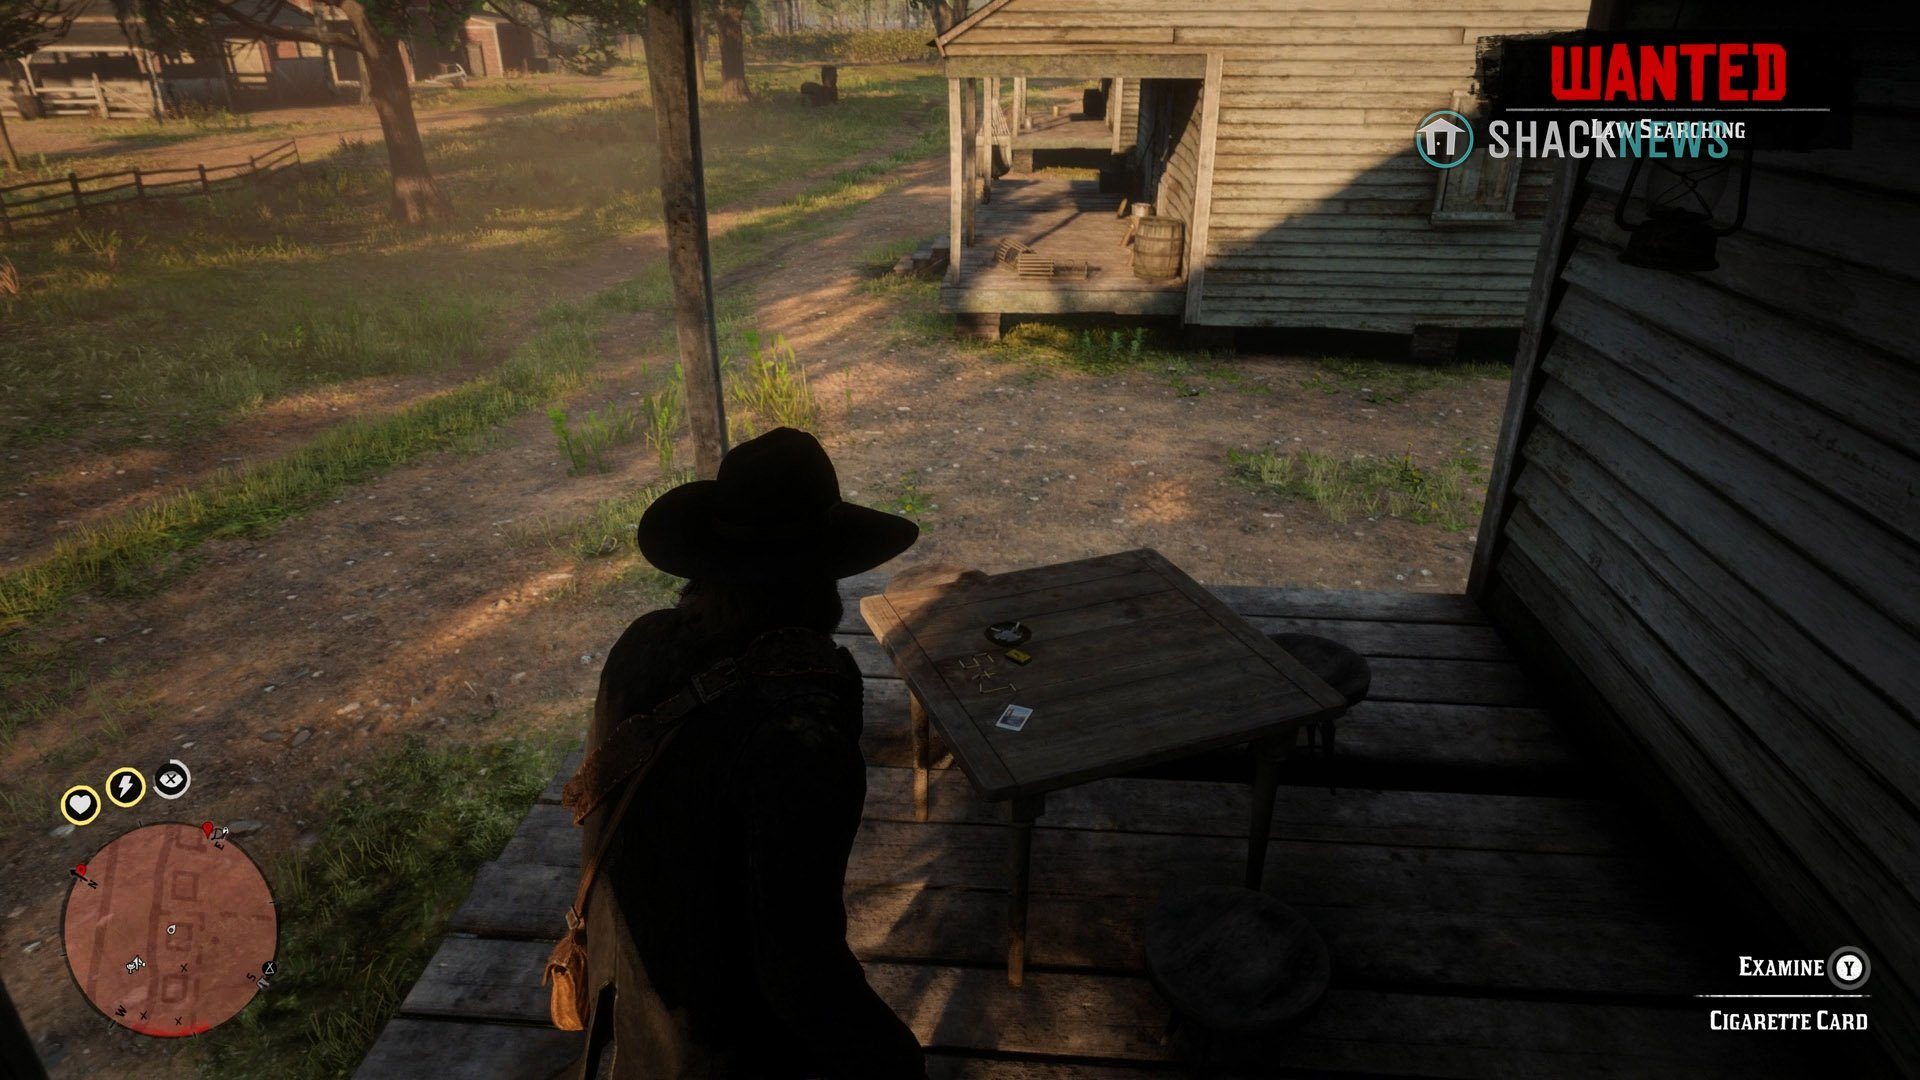 All Vistas of America Cigarette Cards in Red Dead Redemption 2